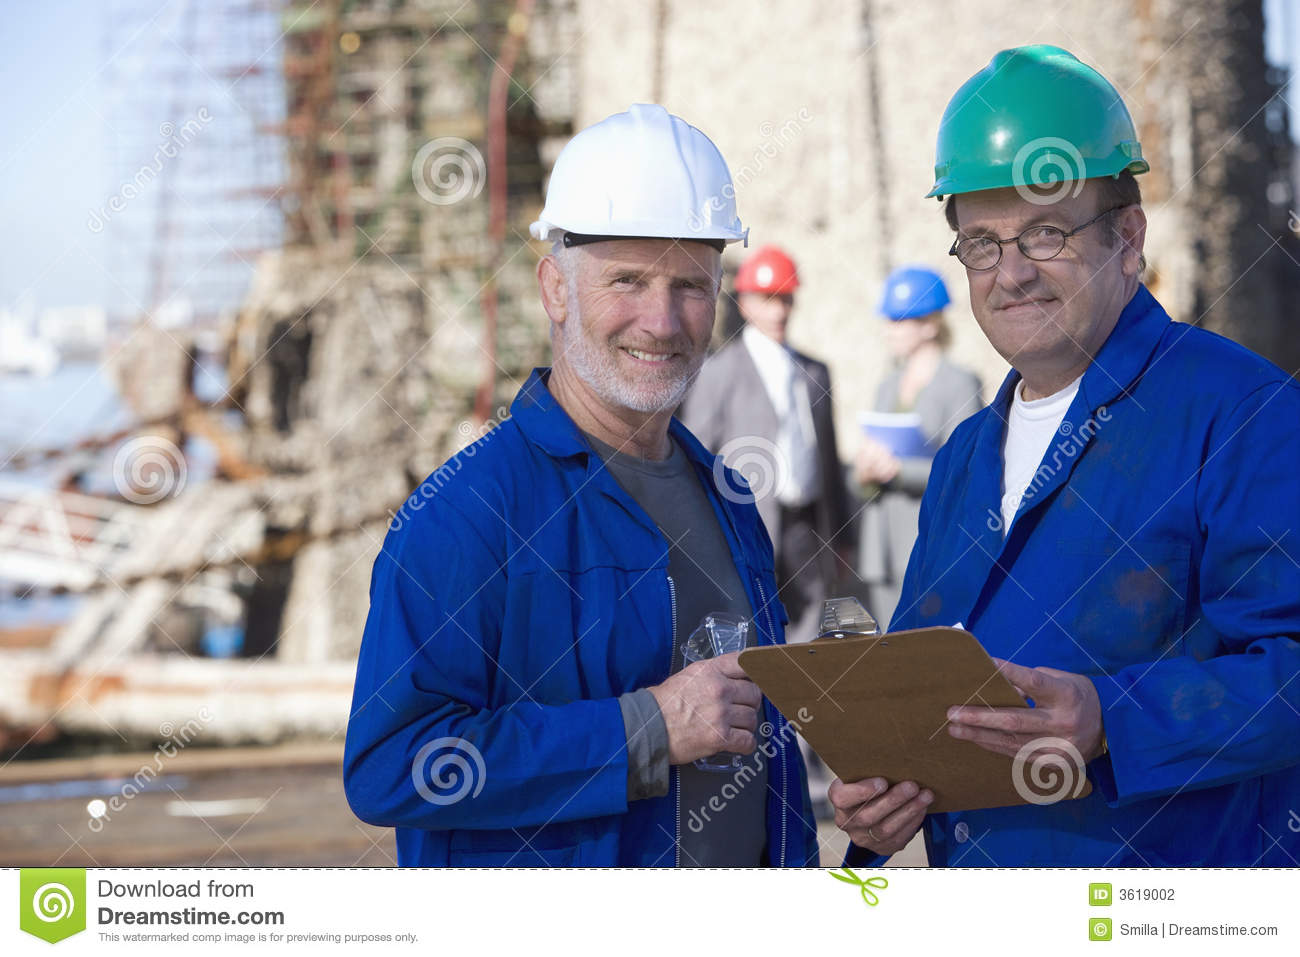 Two shipping engineers taking notes